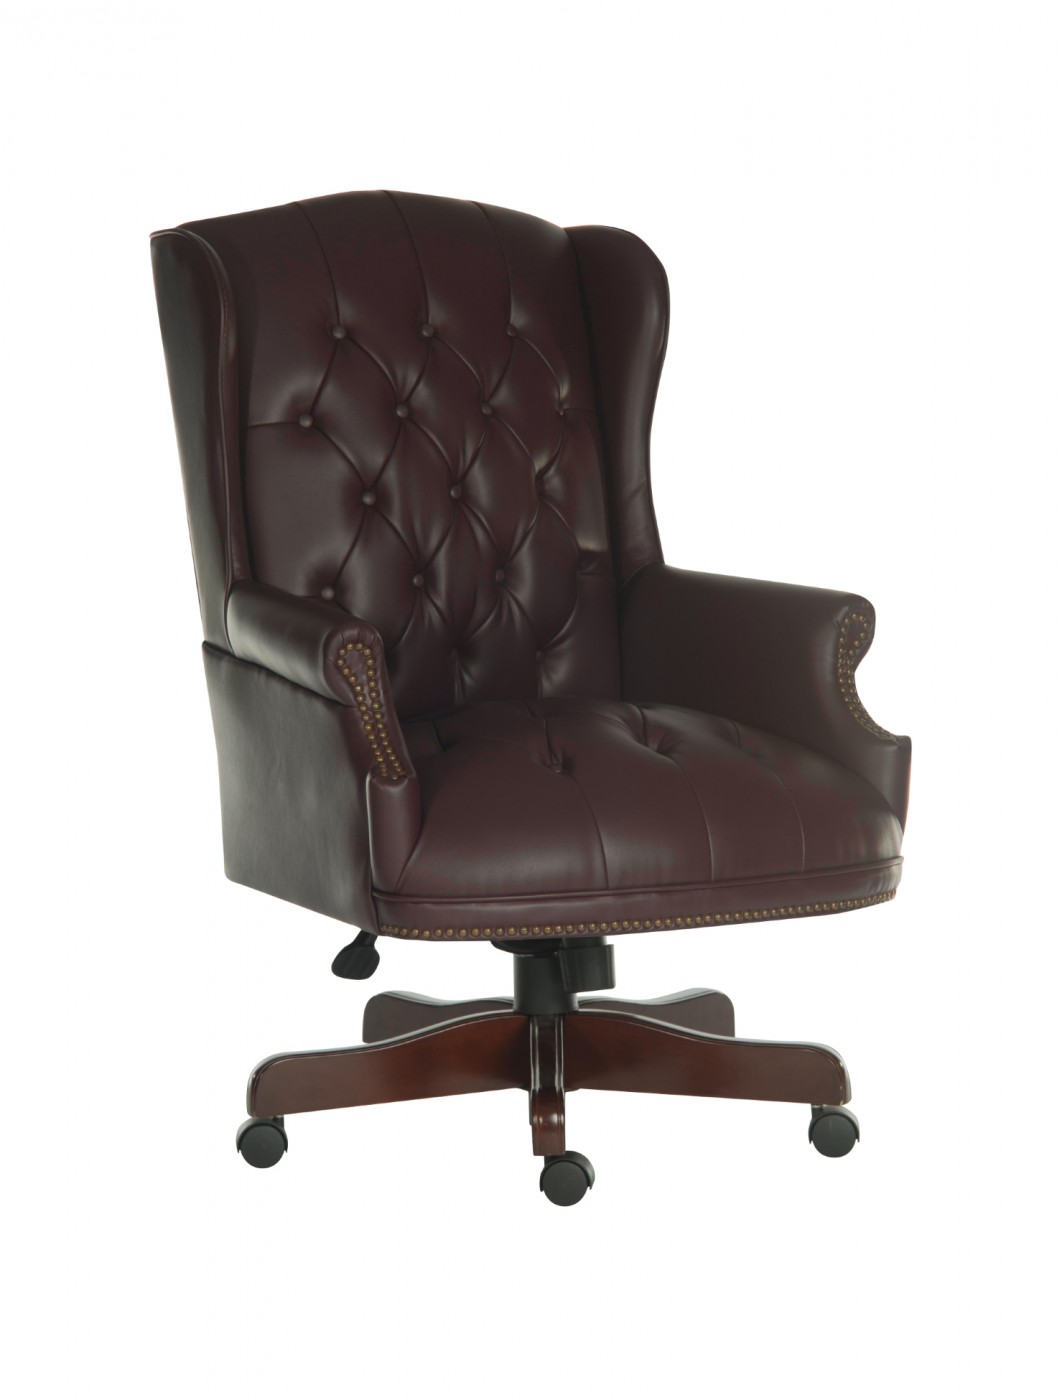 Genial Chairman Traditional Executive Chair B800 In Burgundy   Enlarged View